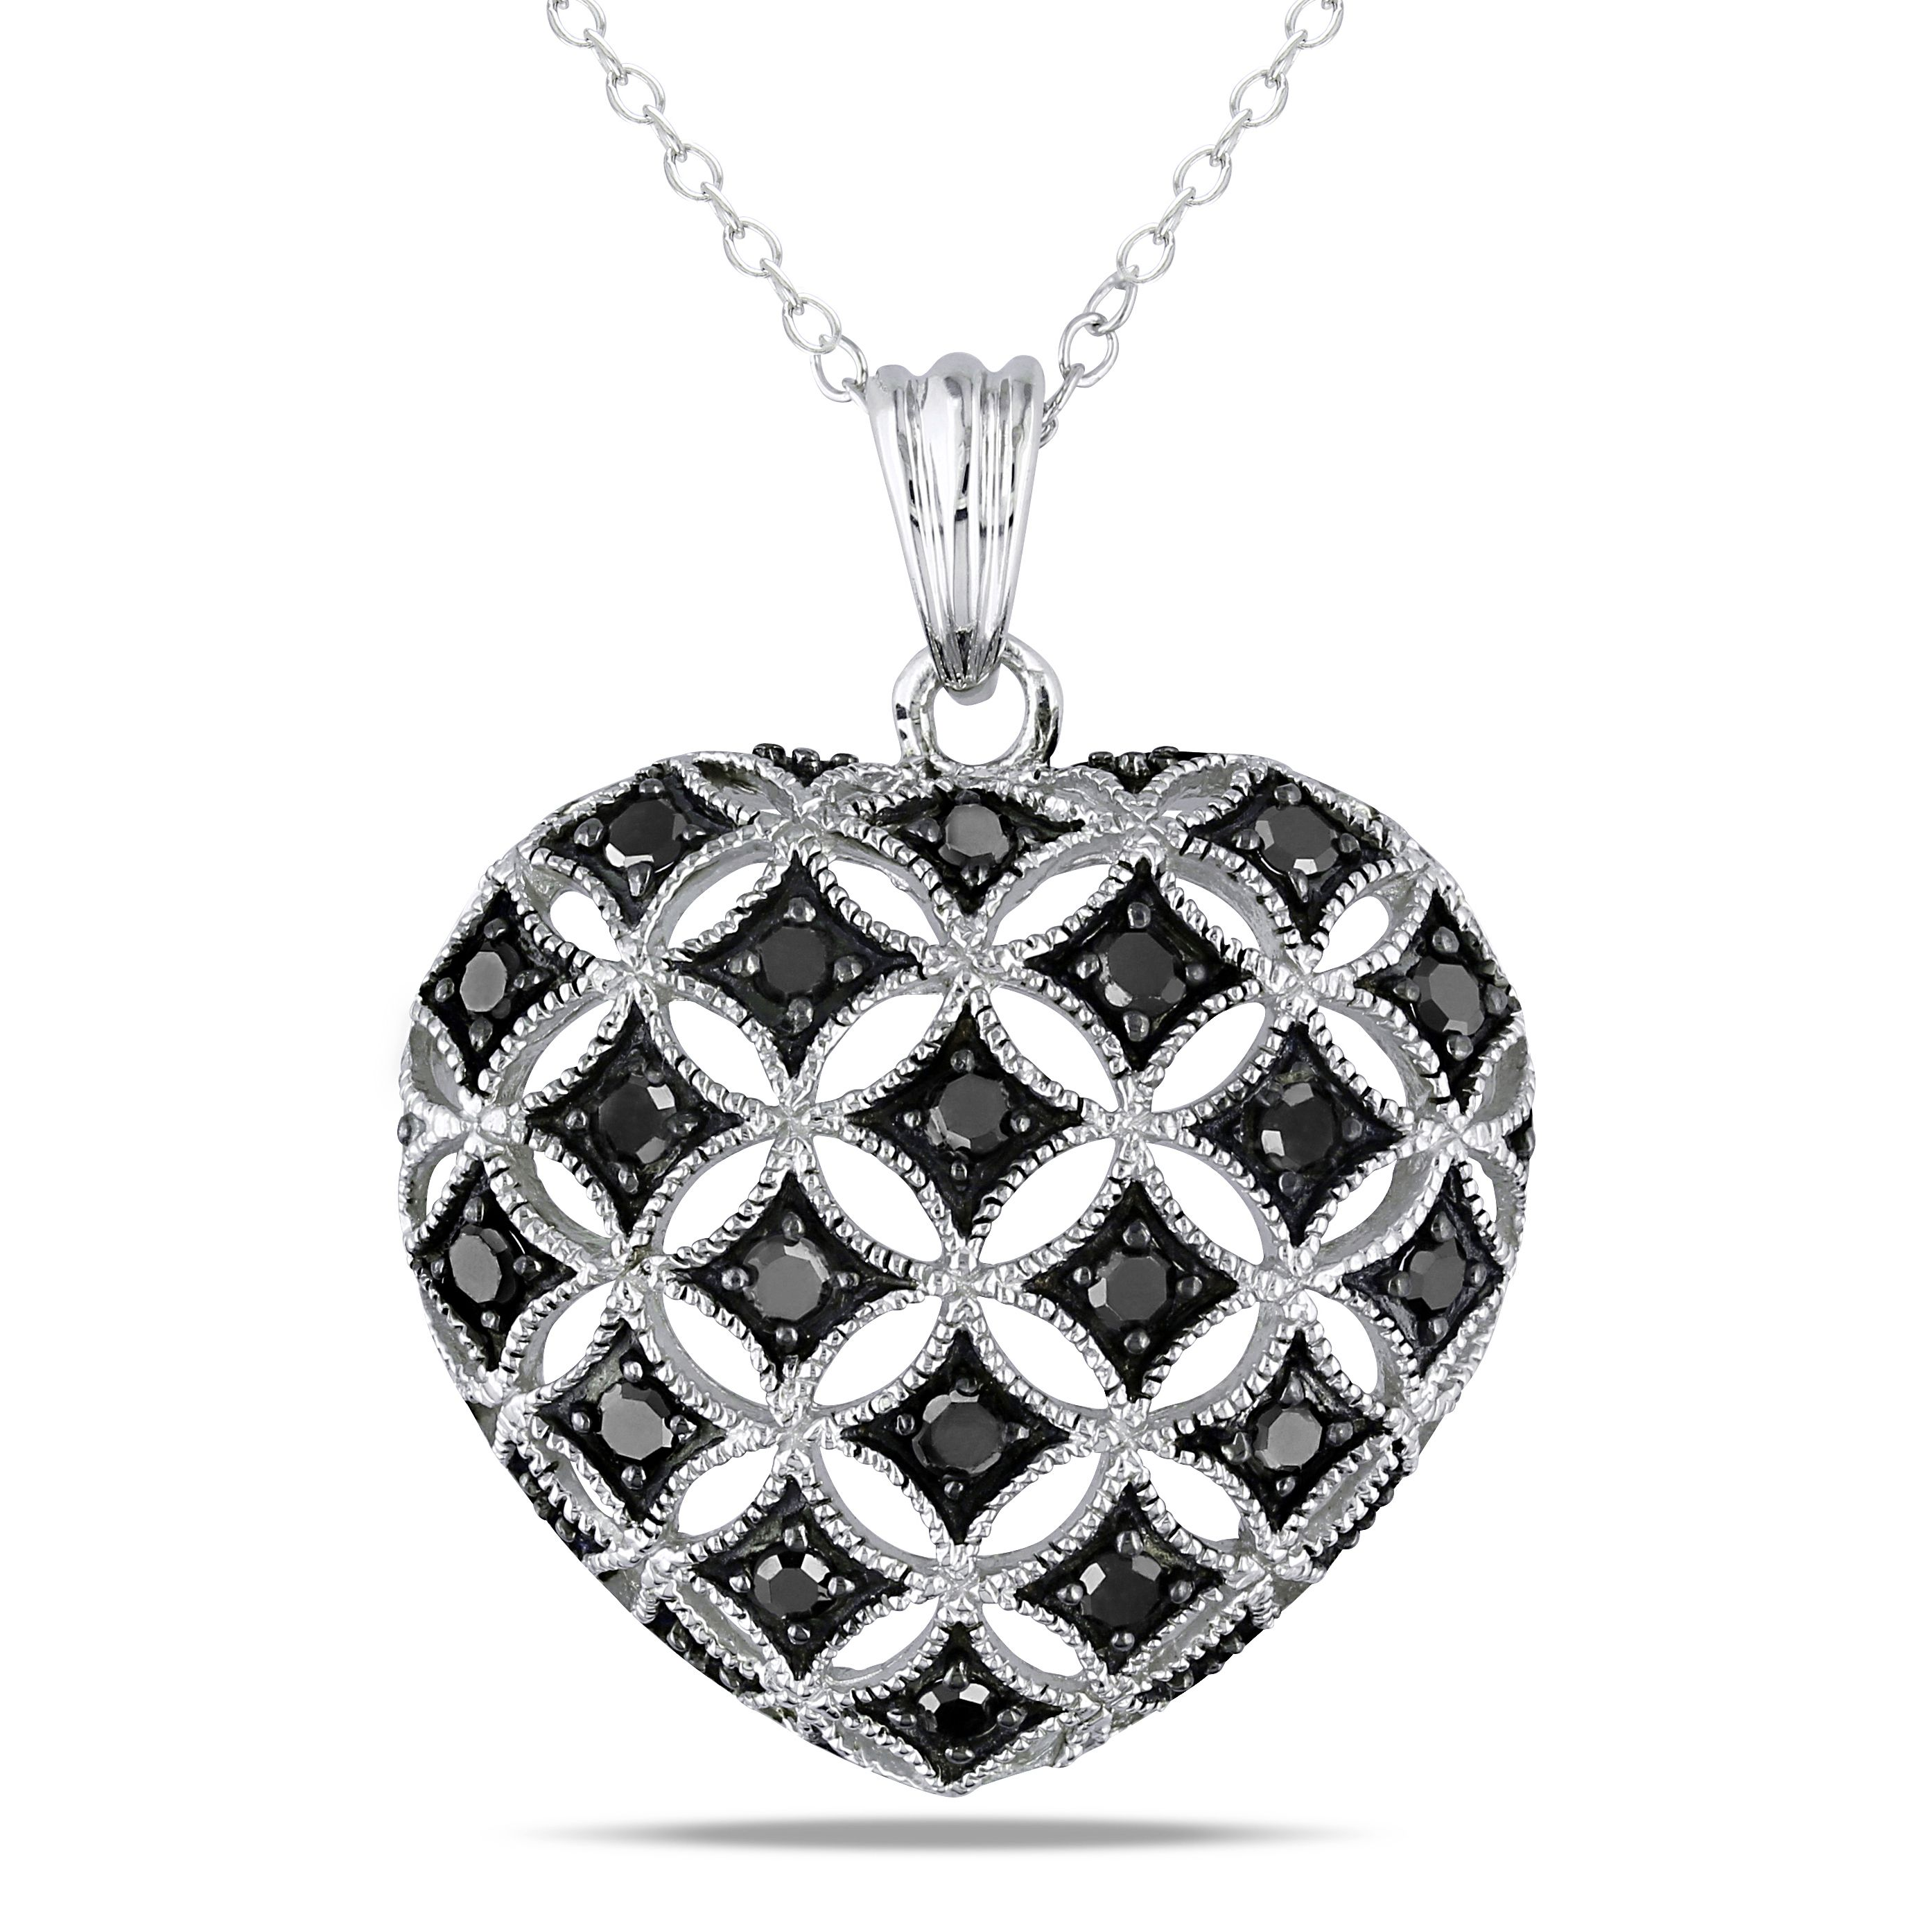 Miadora Sterling Silver 1 2ct TDW Black Diamond Heart Necklace by